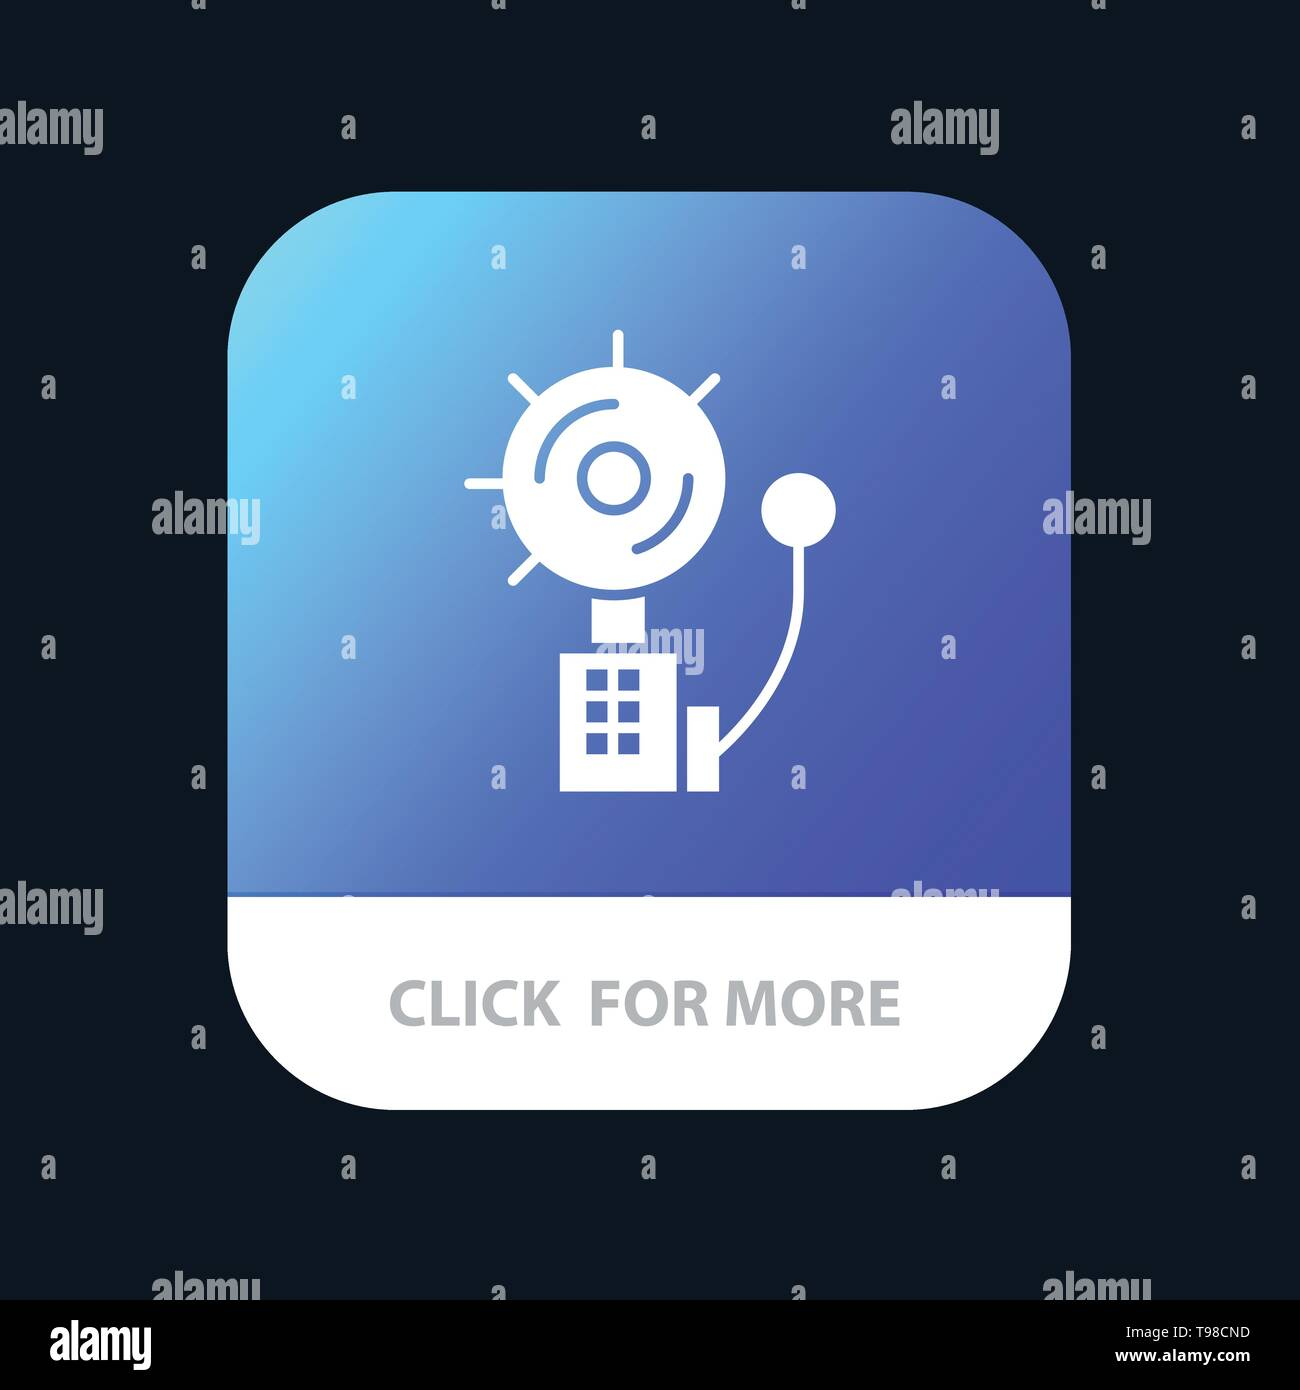 Alarm, Alert, Bell, Fire, Intruder Mobile App Button. Android and IOS Glyph Version - Stock Image